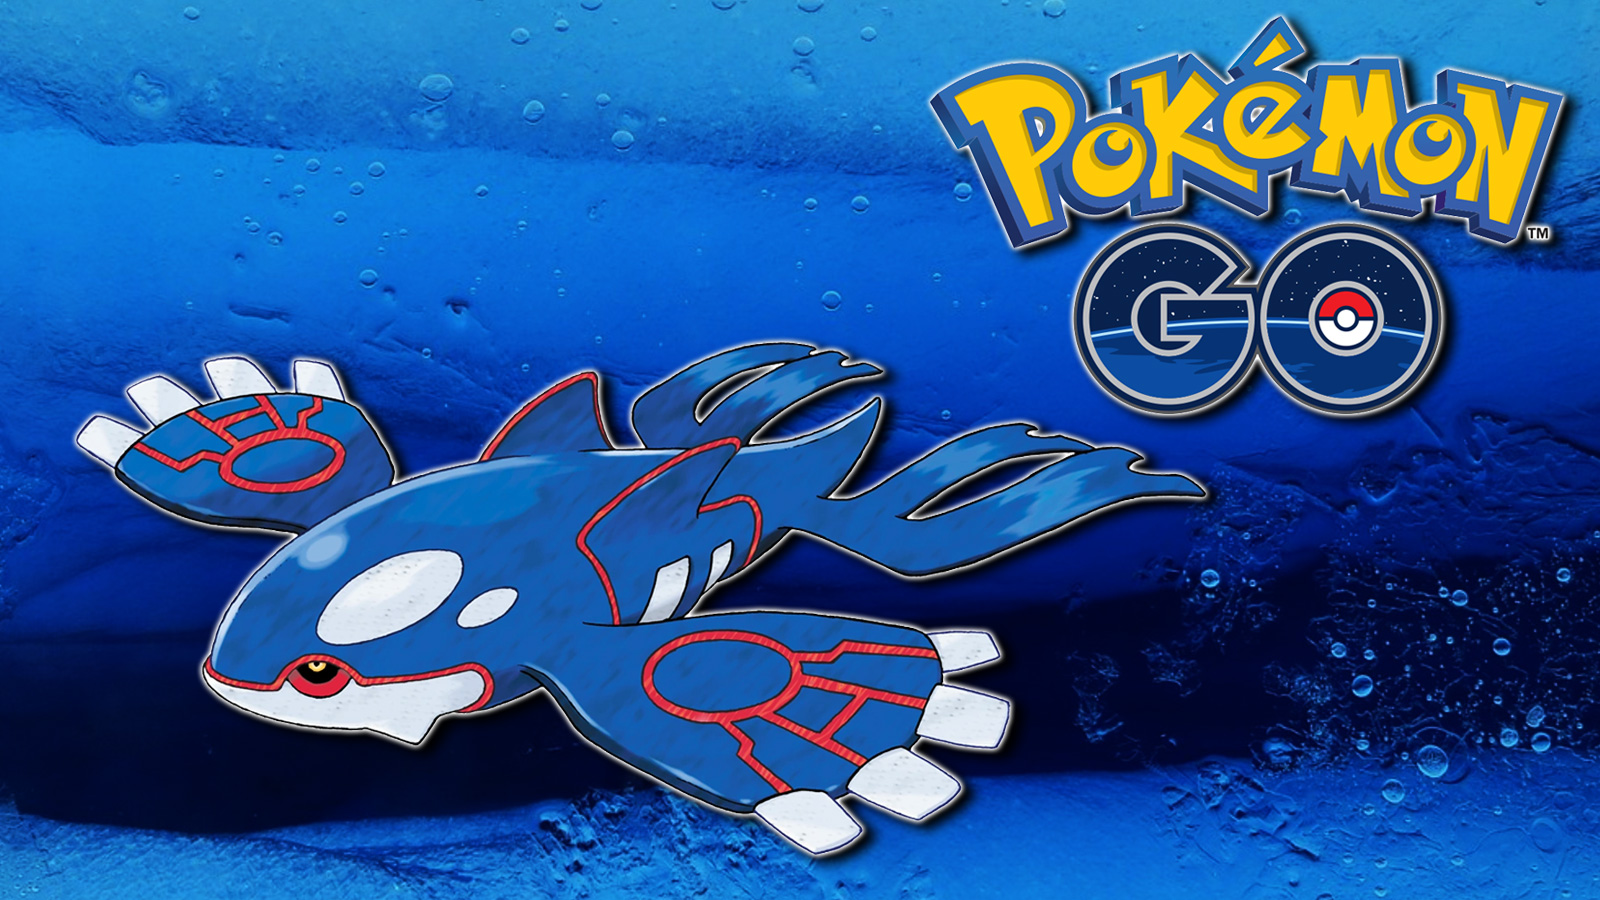 Screenshot of Pokemon Legendary Kyogre in Ocean next to Go logo.